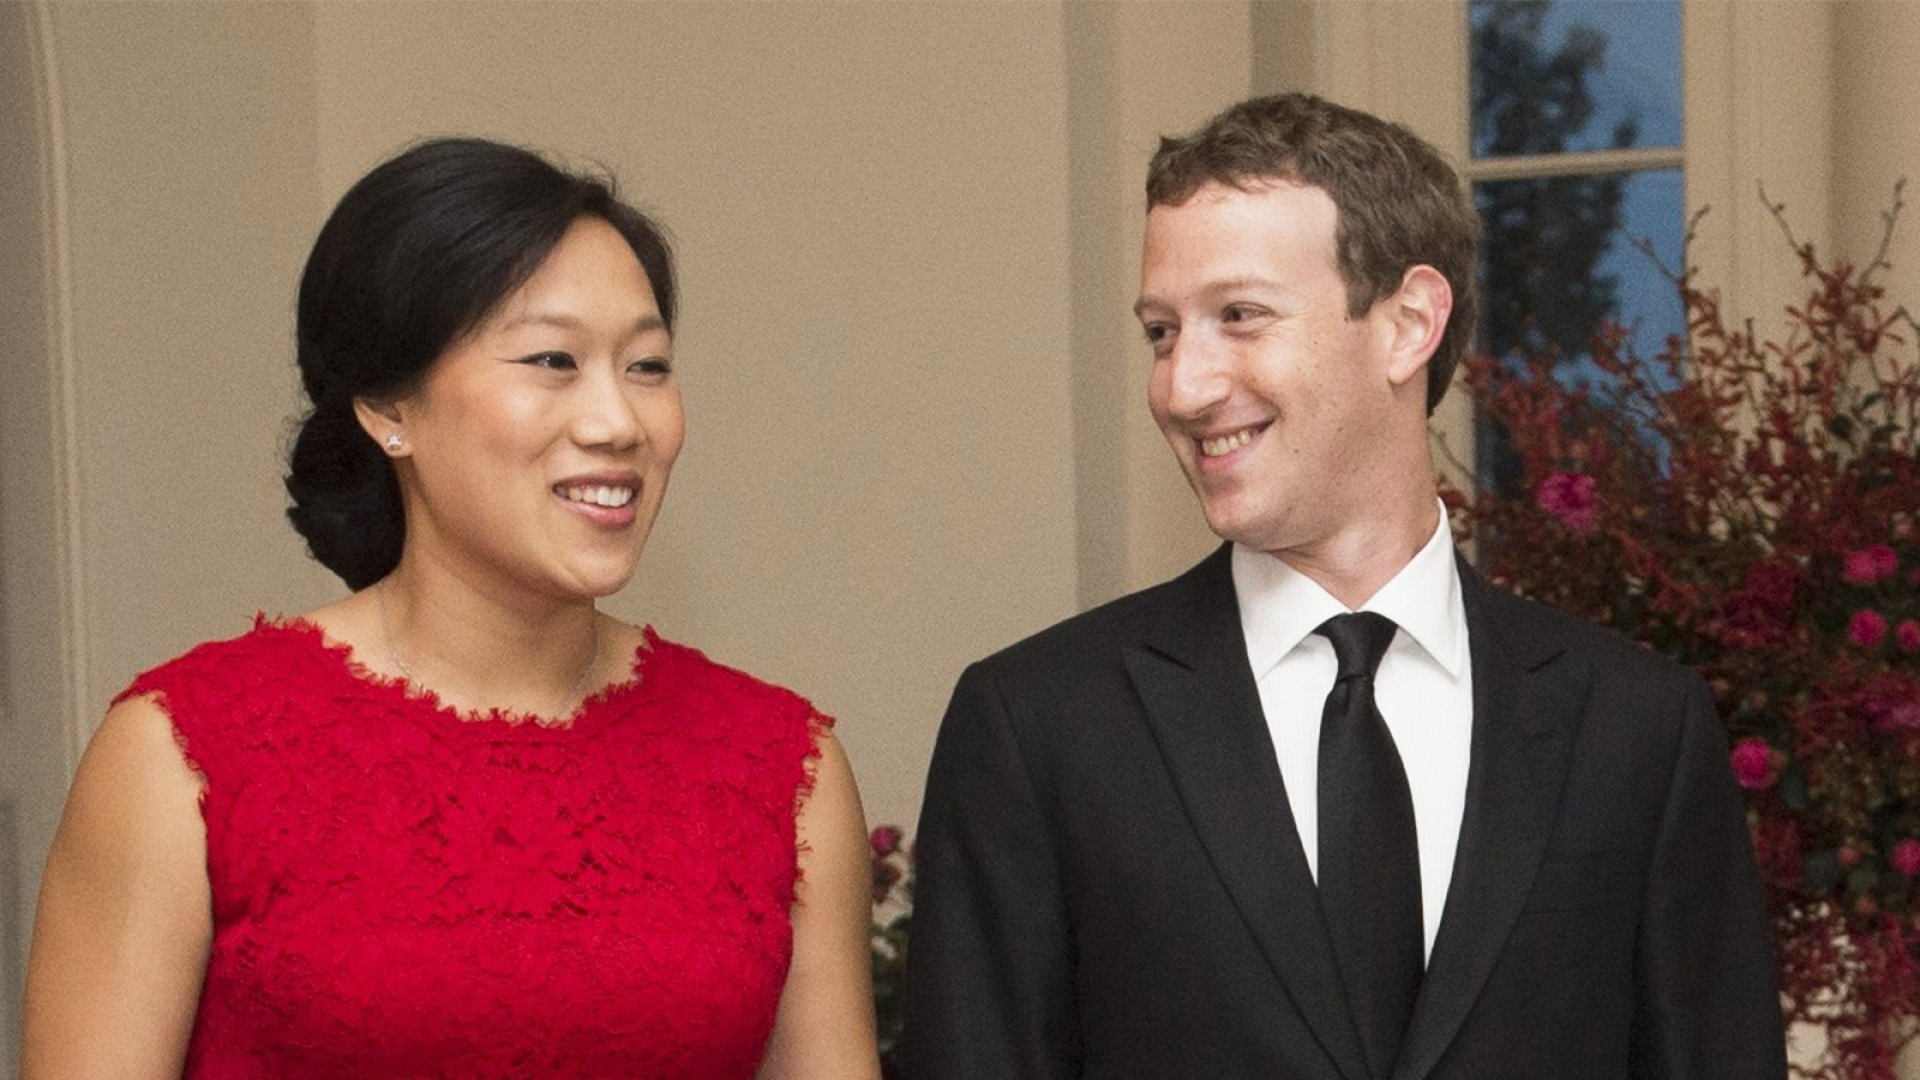 The Oddly Specific Marriage Rule Behind Mark Zuckerberg's Success